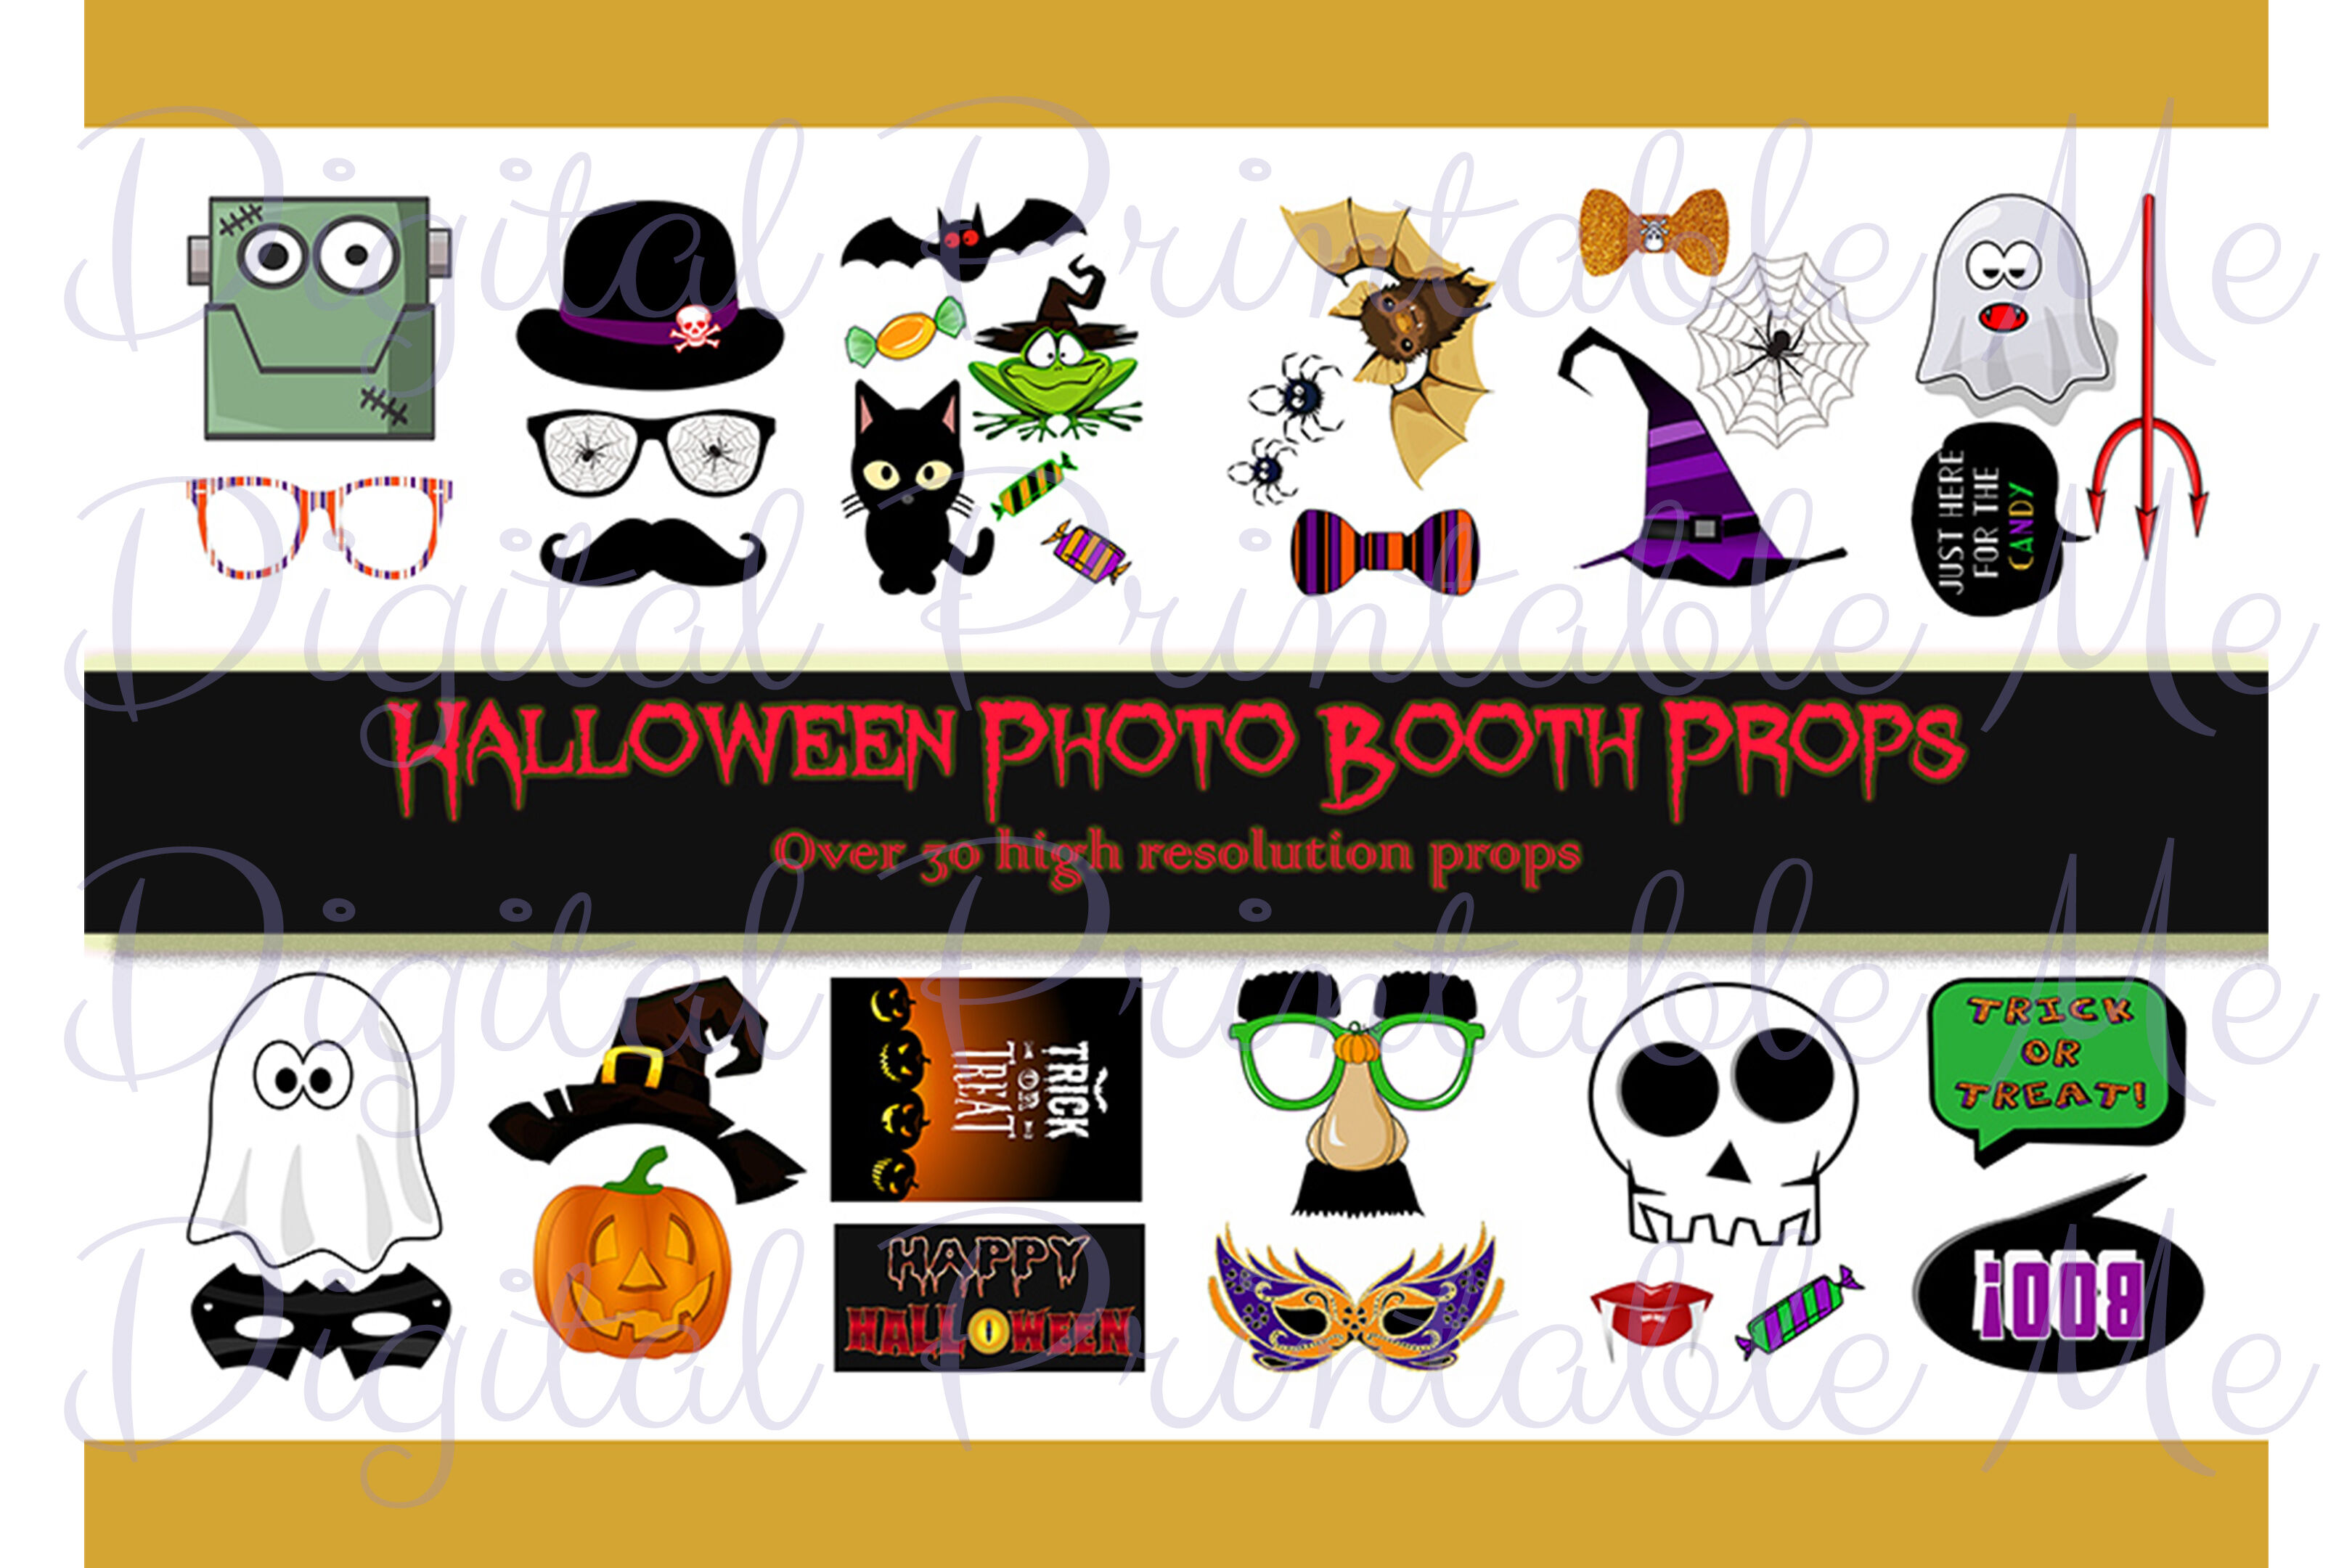 picture regarding Halloween Photo Booth Props Printable named Halloween Picture Booth Props, Printable Photograph Booth Props